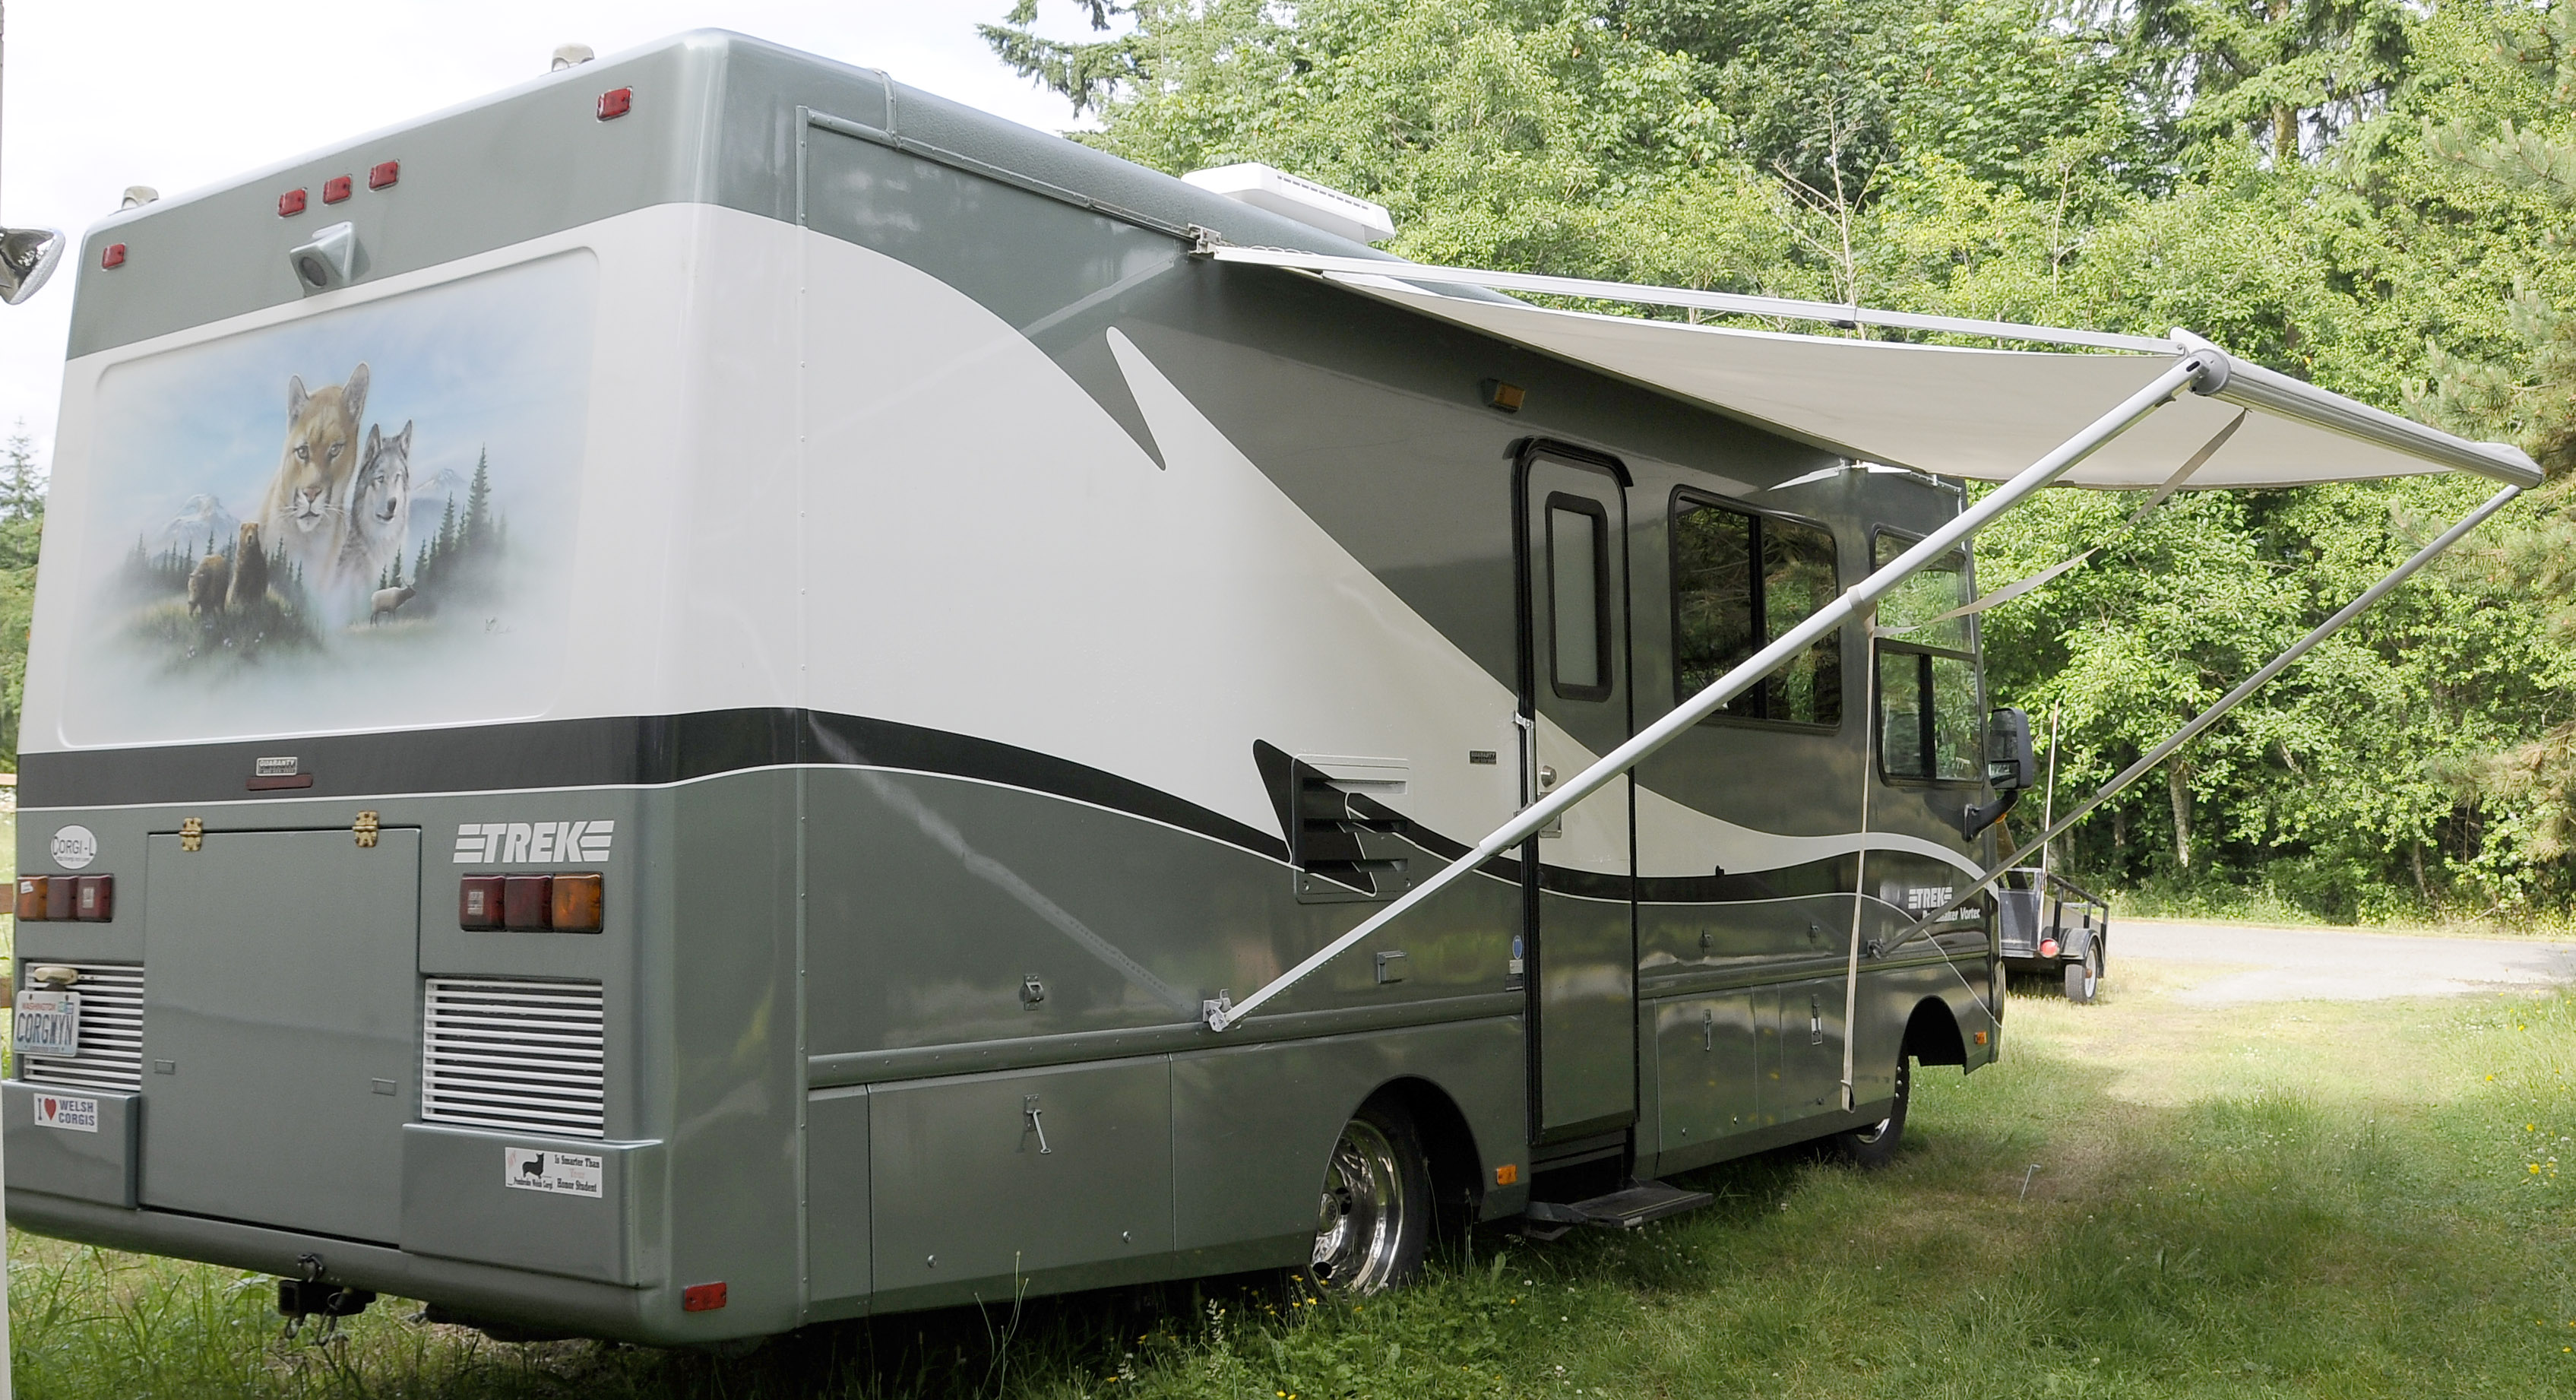 Leo & Kathy's Place: For Sale: 1999 Safari Trek 26' Gas RV